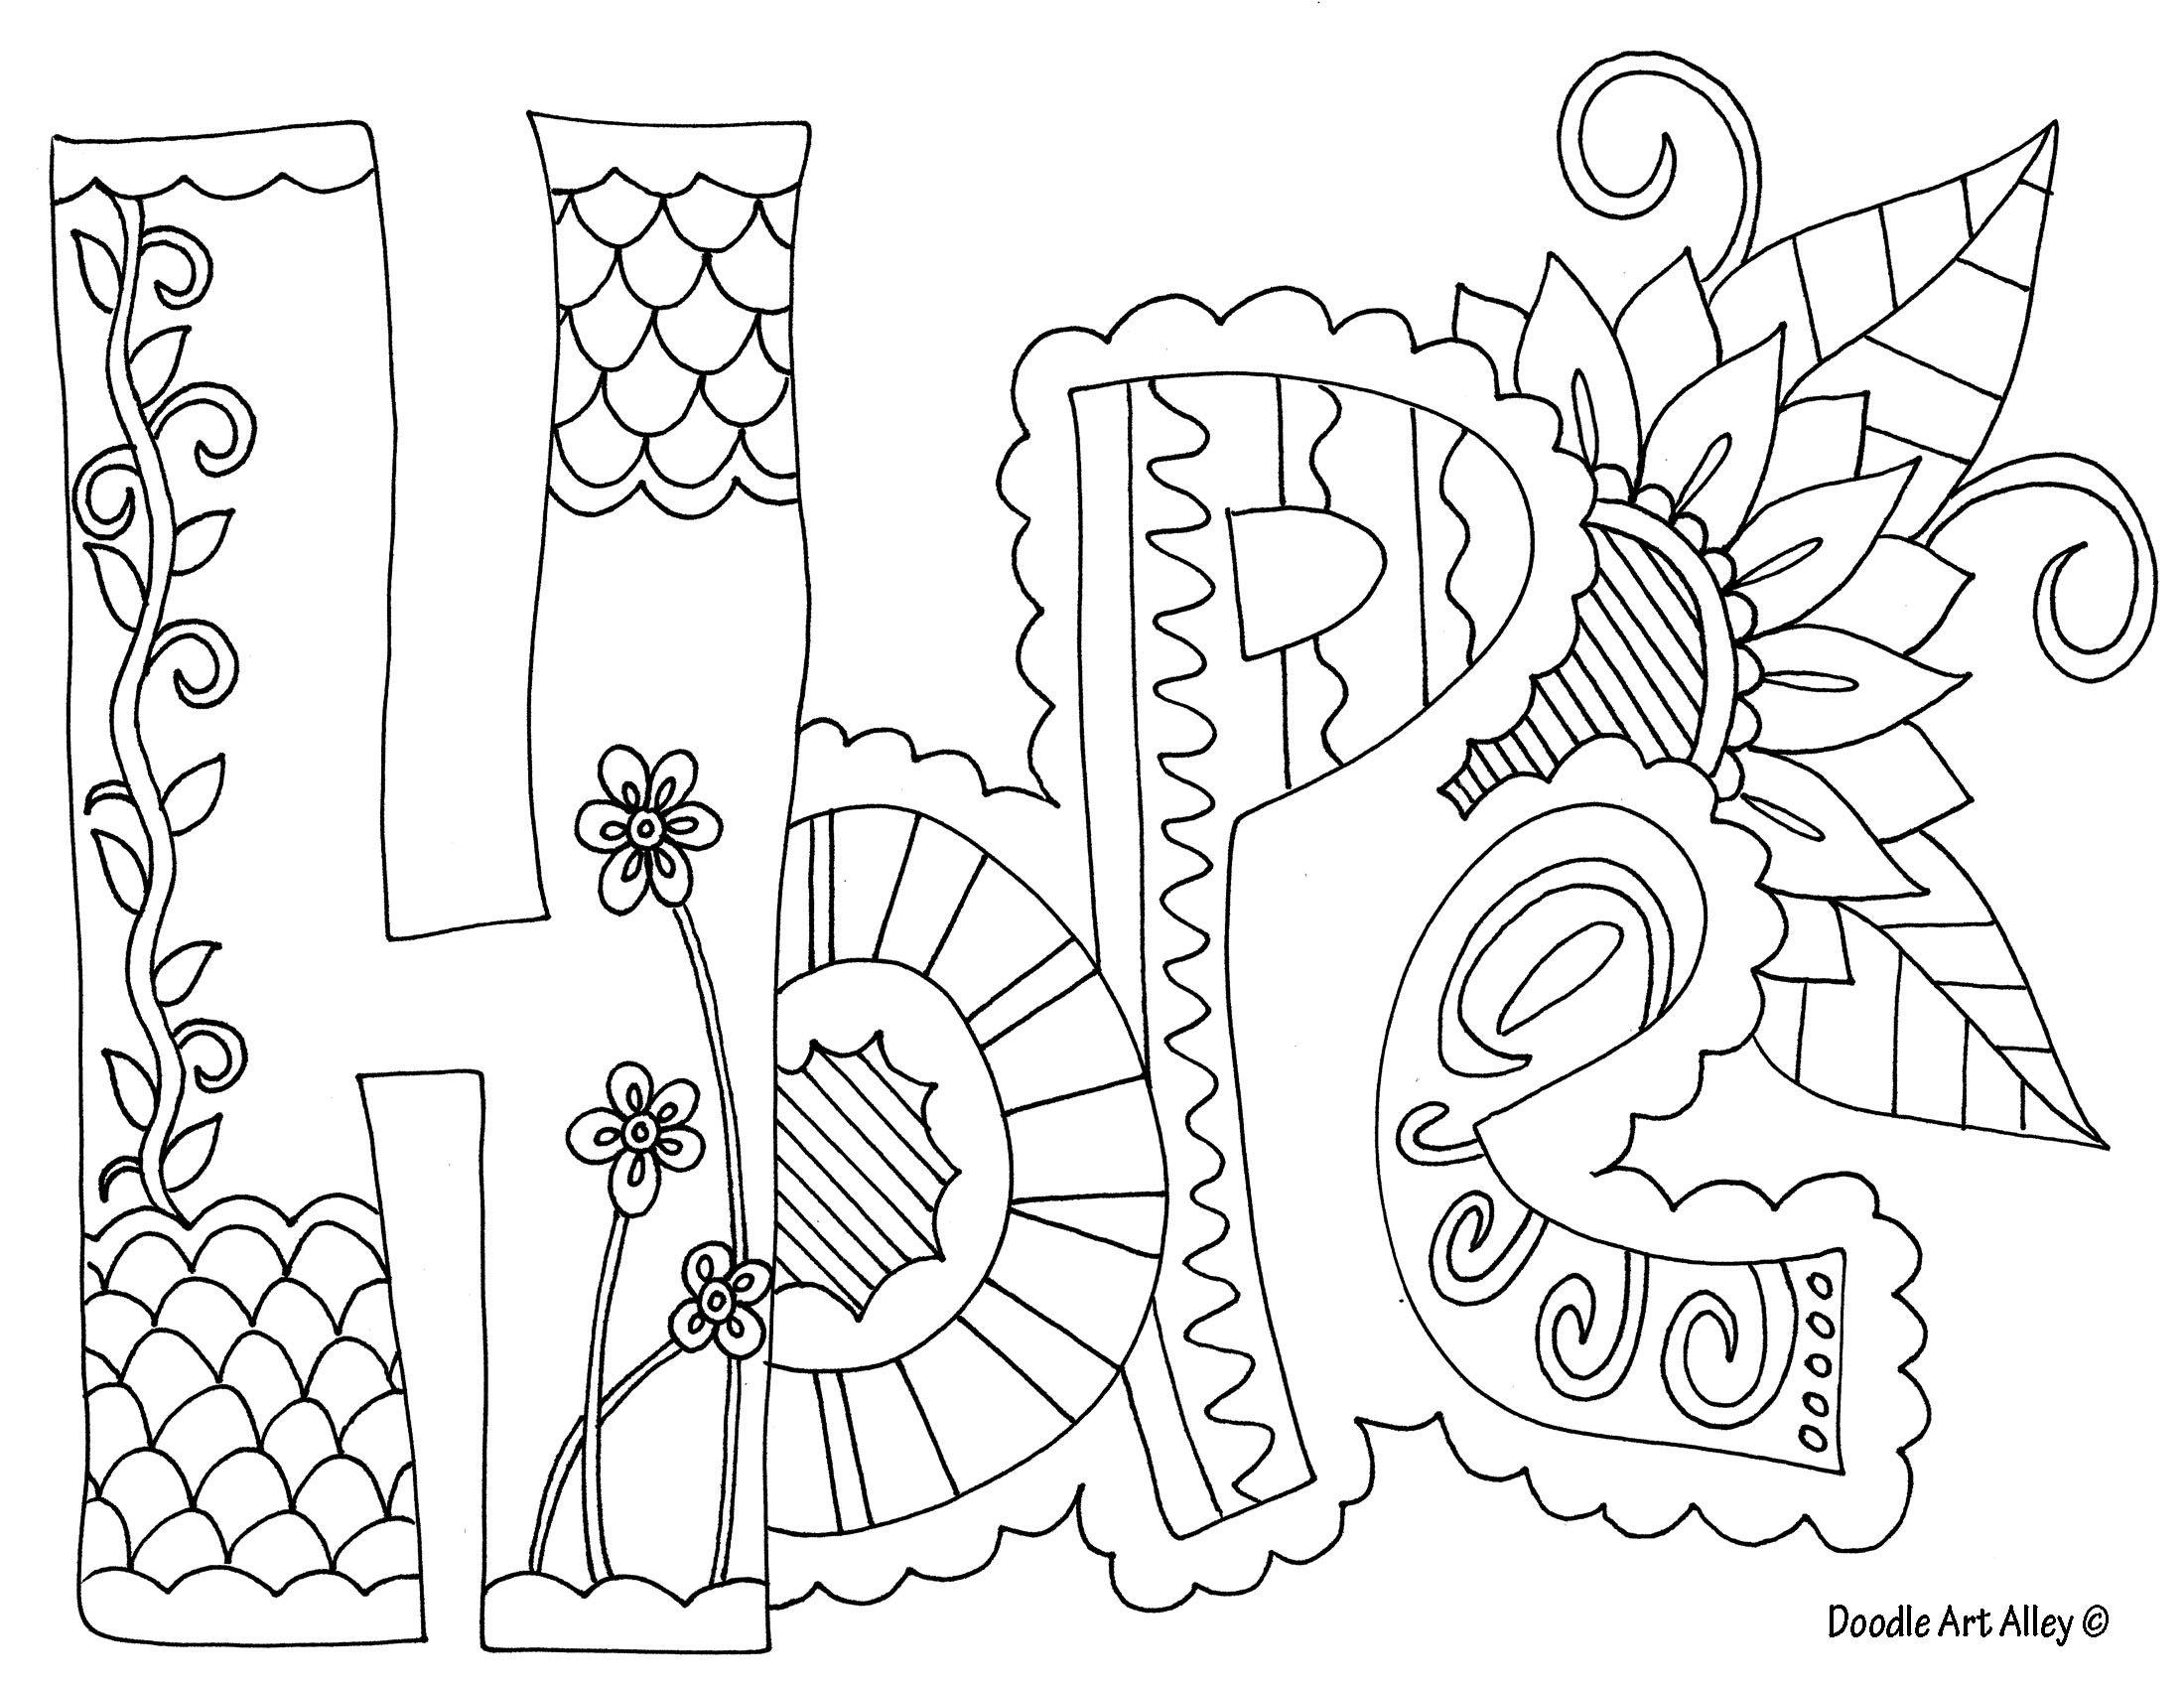 by Mary Barnes-Ekobena on Adult Coloring Therapy-Free